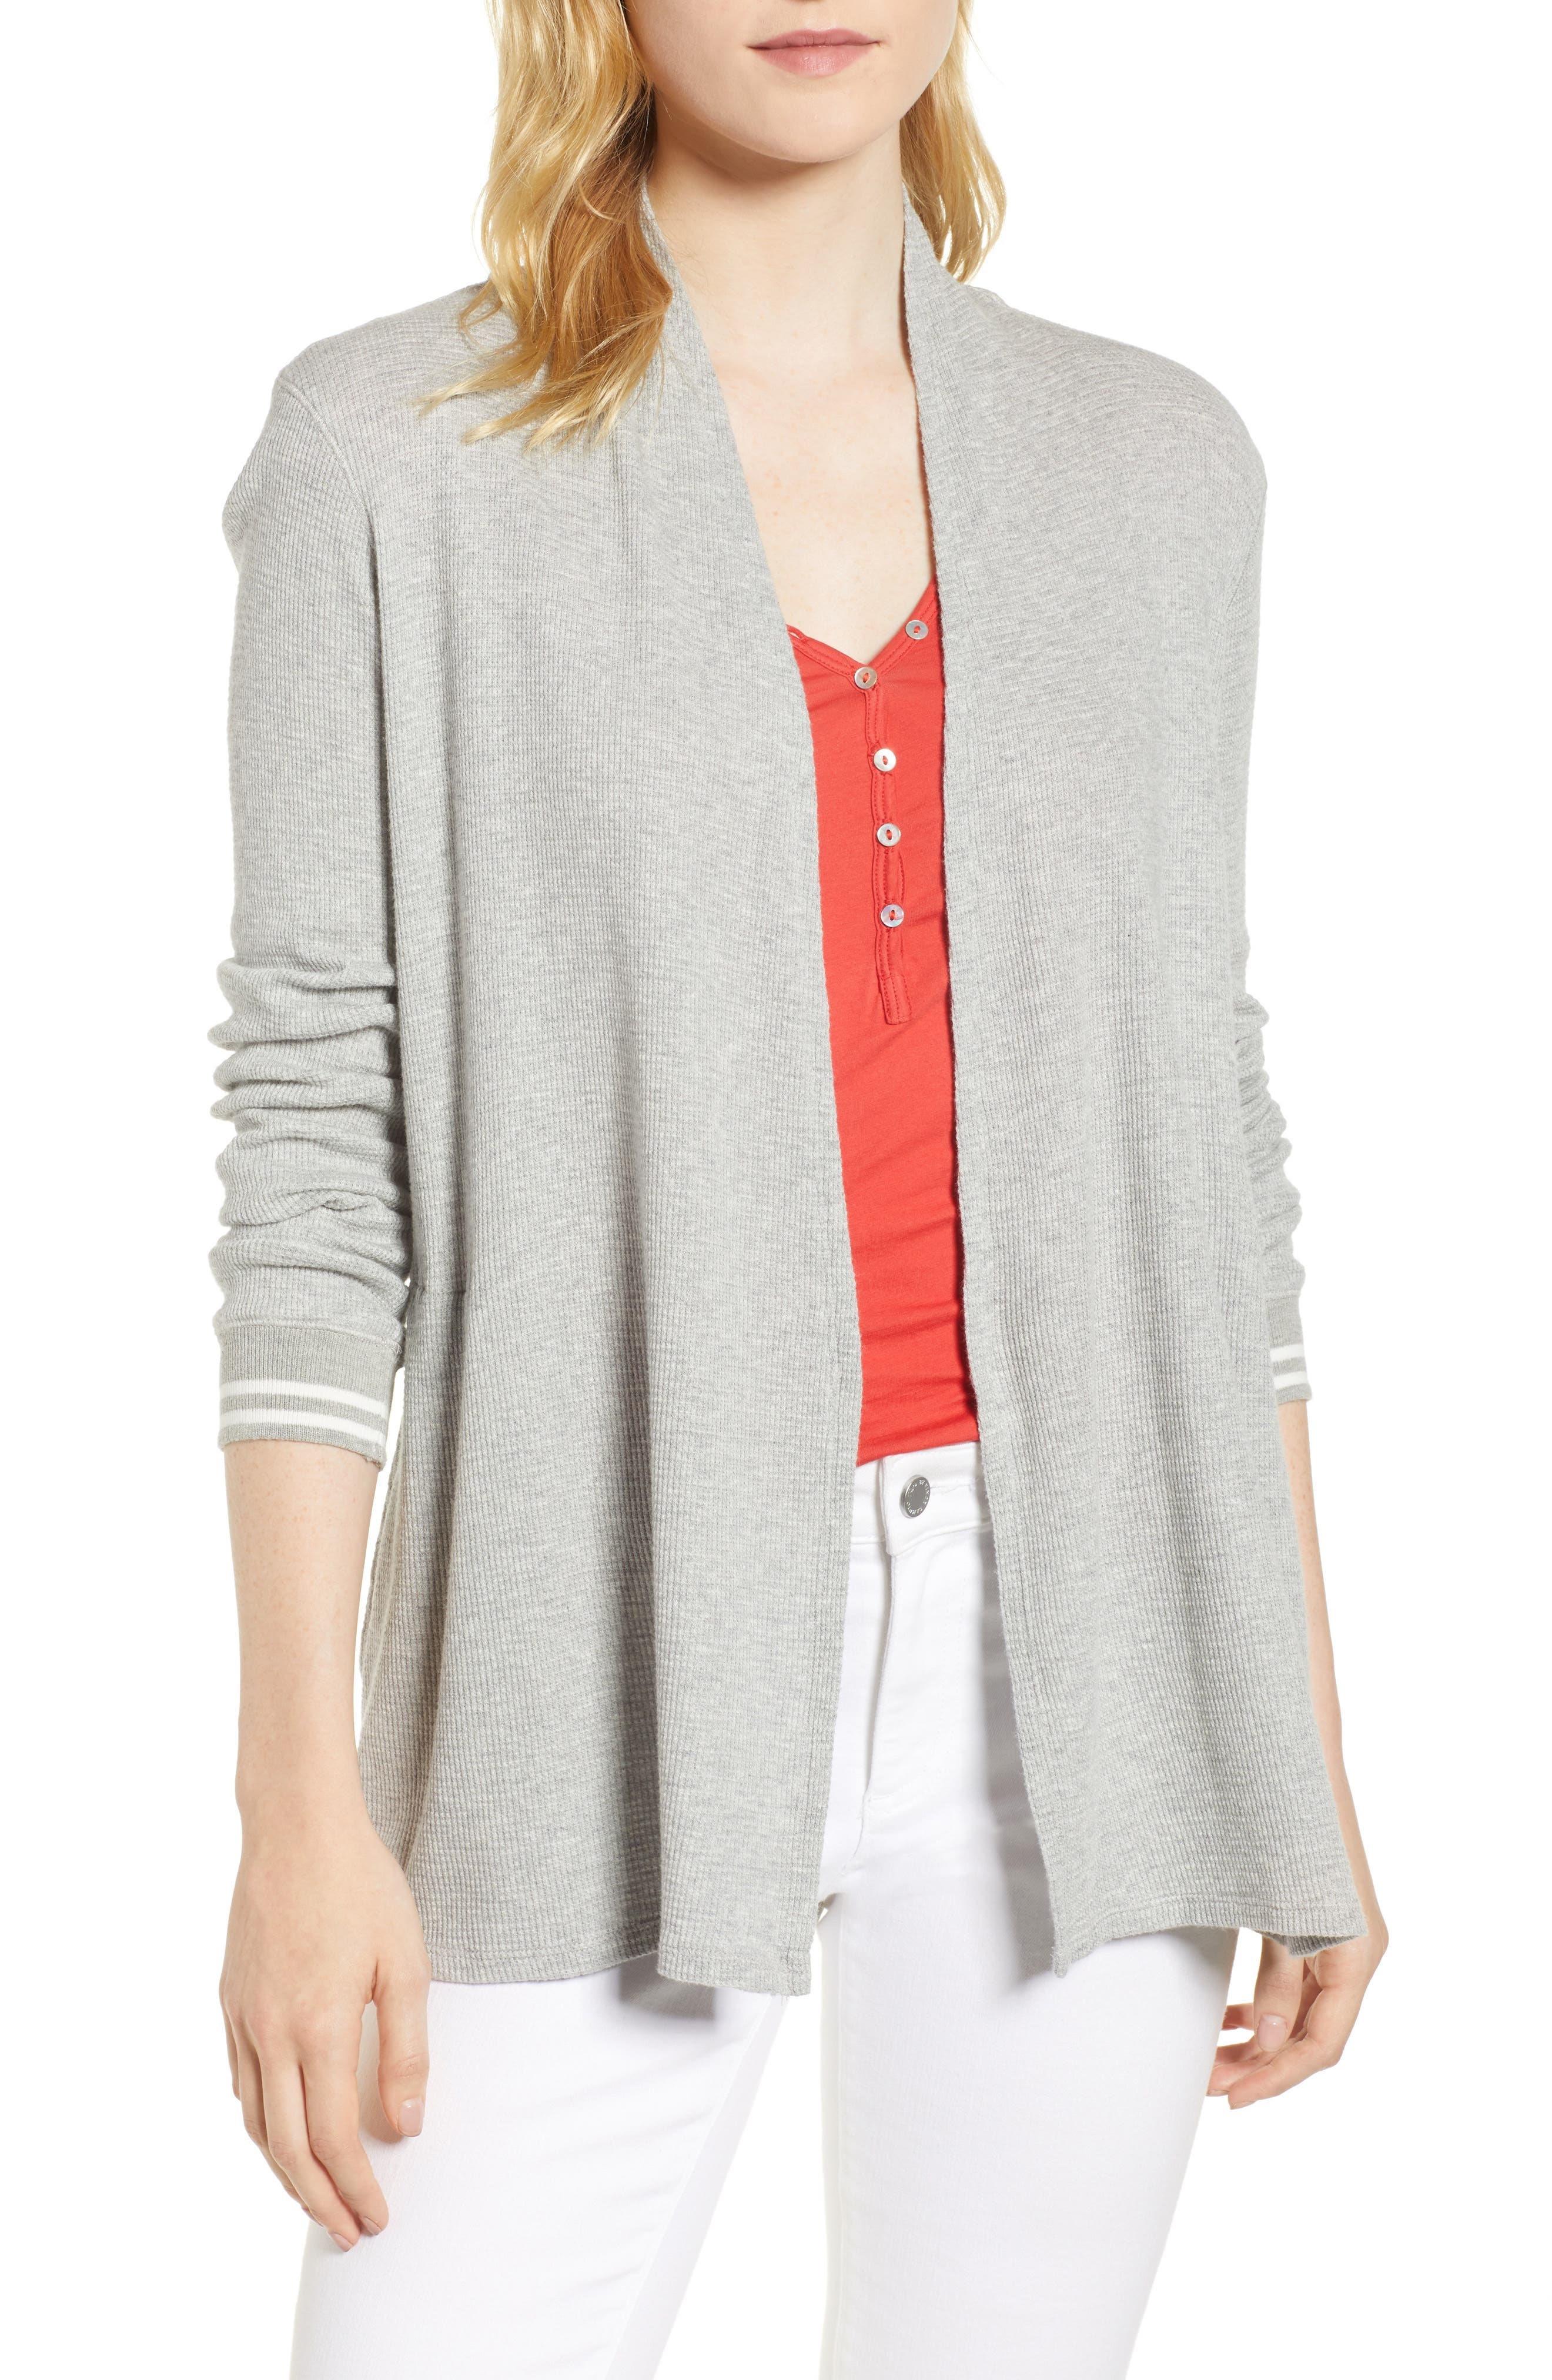 Baby Thermal Open Knit Cardigan,                         Main,                         color, Heather Grey